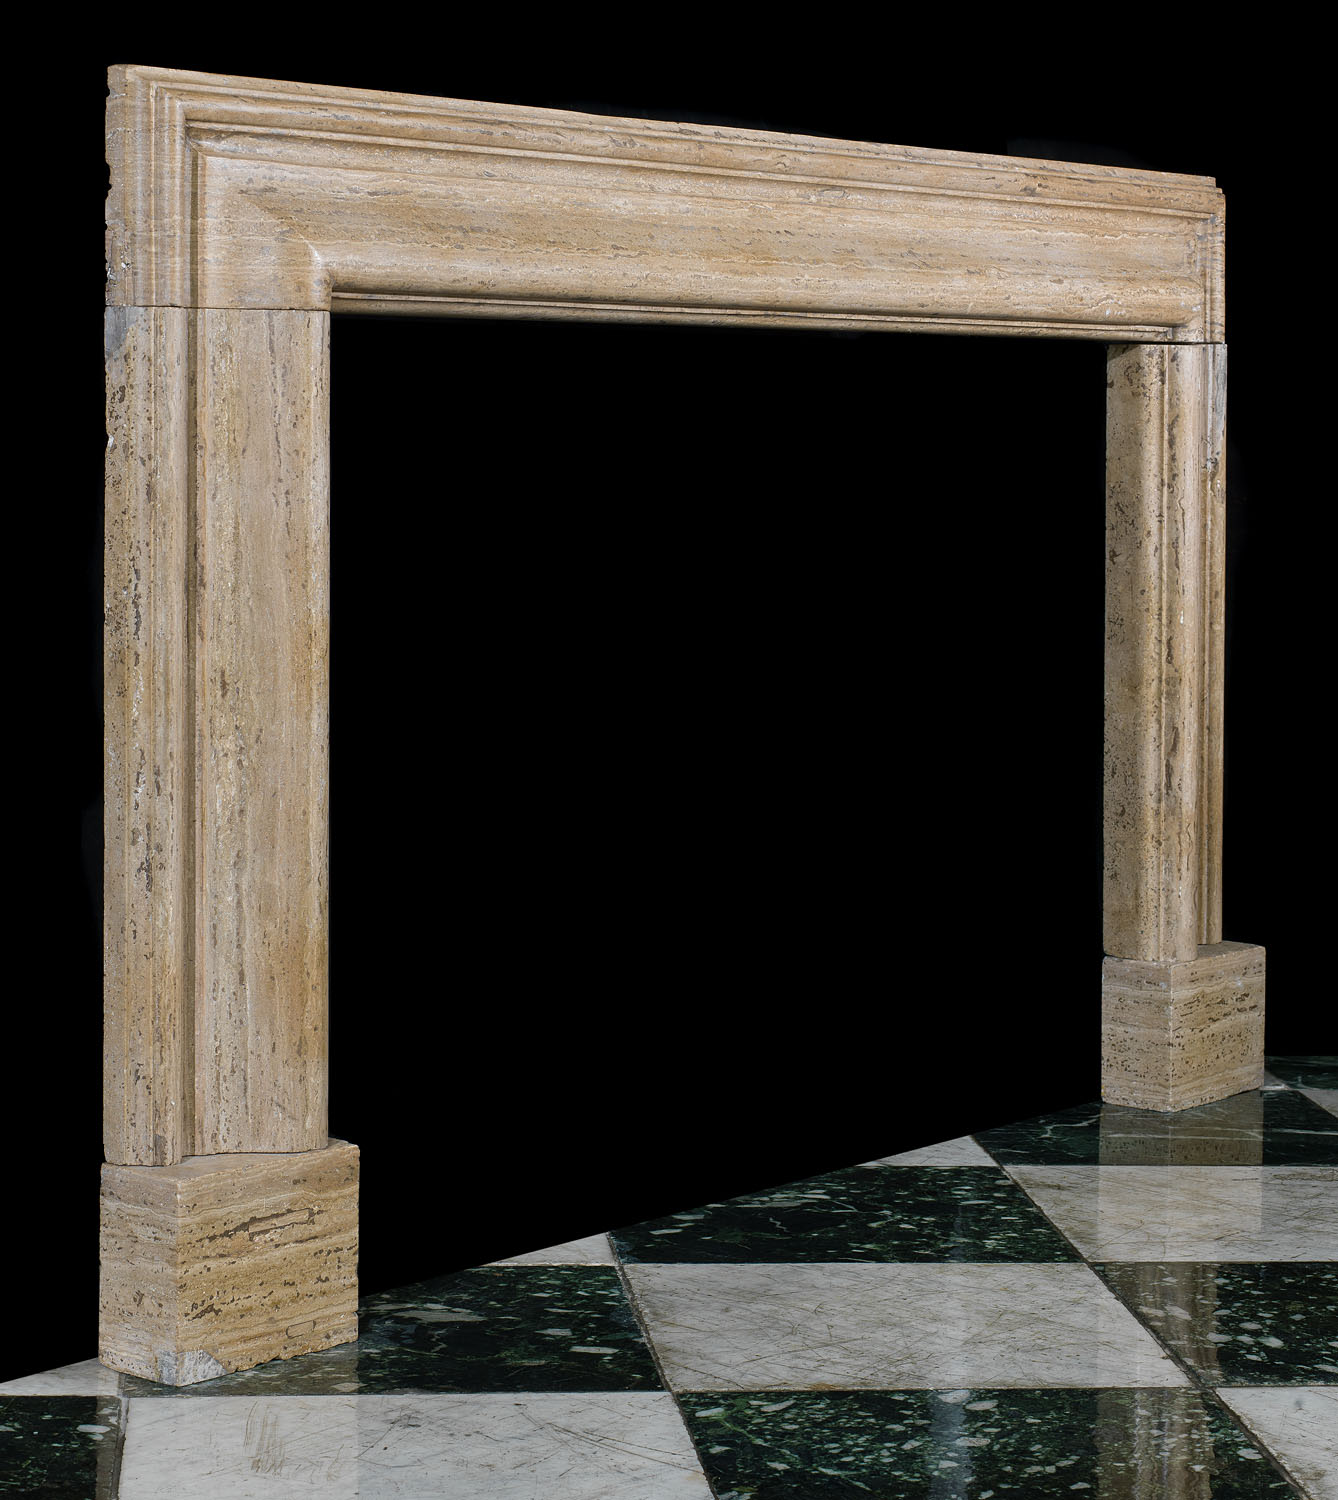 A 20th century Bolection Fireplace Surround in Travertine marble